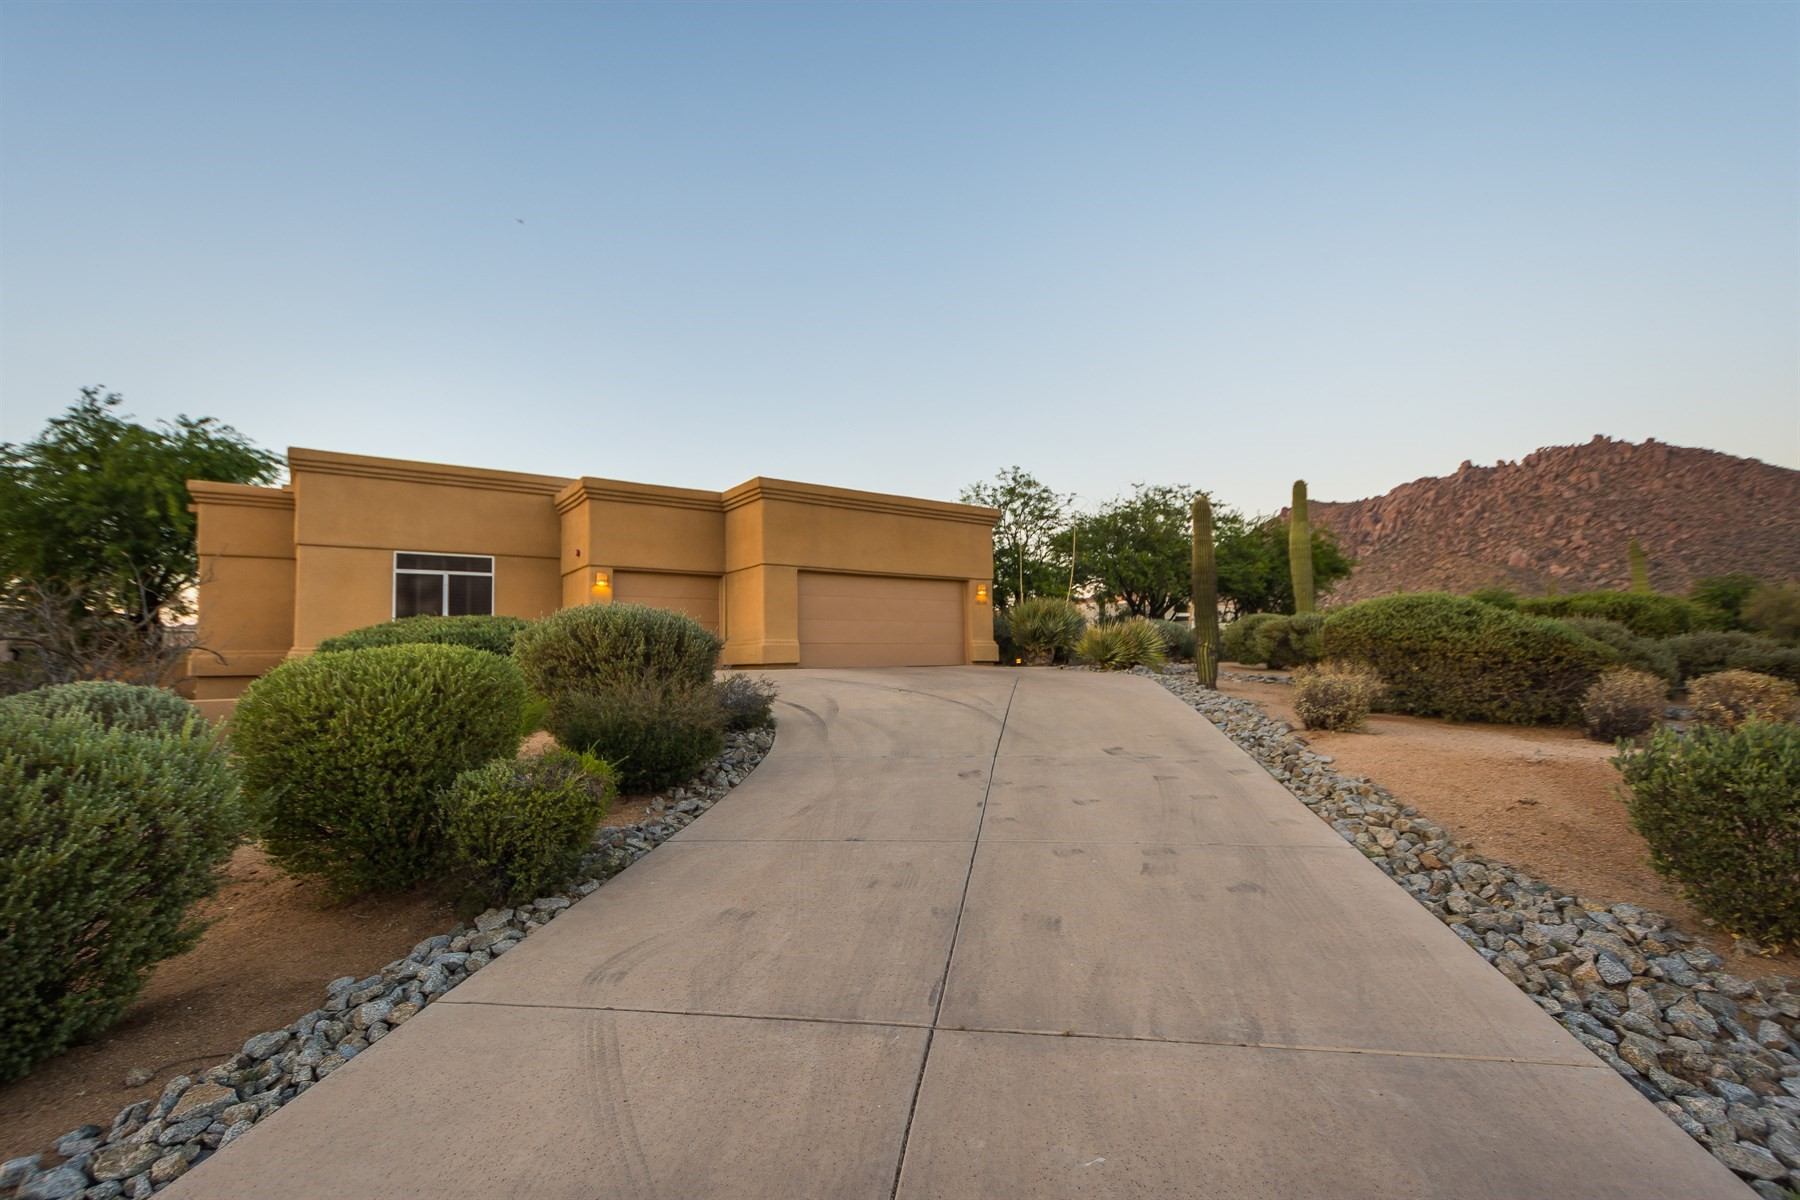 Single Family Home for Sale at Beautifully maintained home with spectacular views 10320 E Ranch Gate Rd Scottsdale, Arizona, 85255 United States